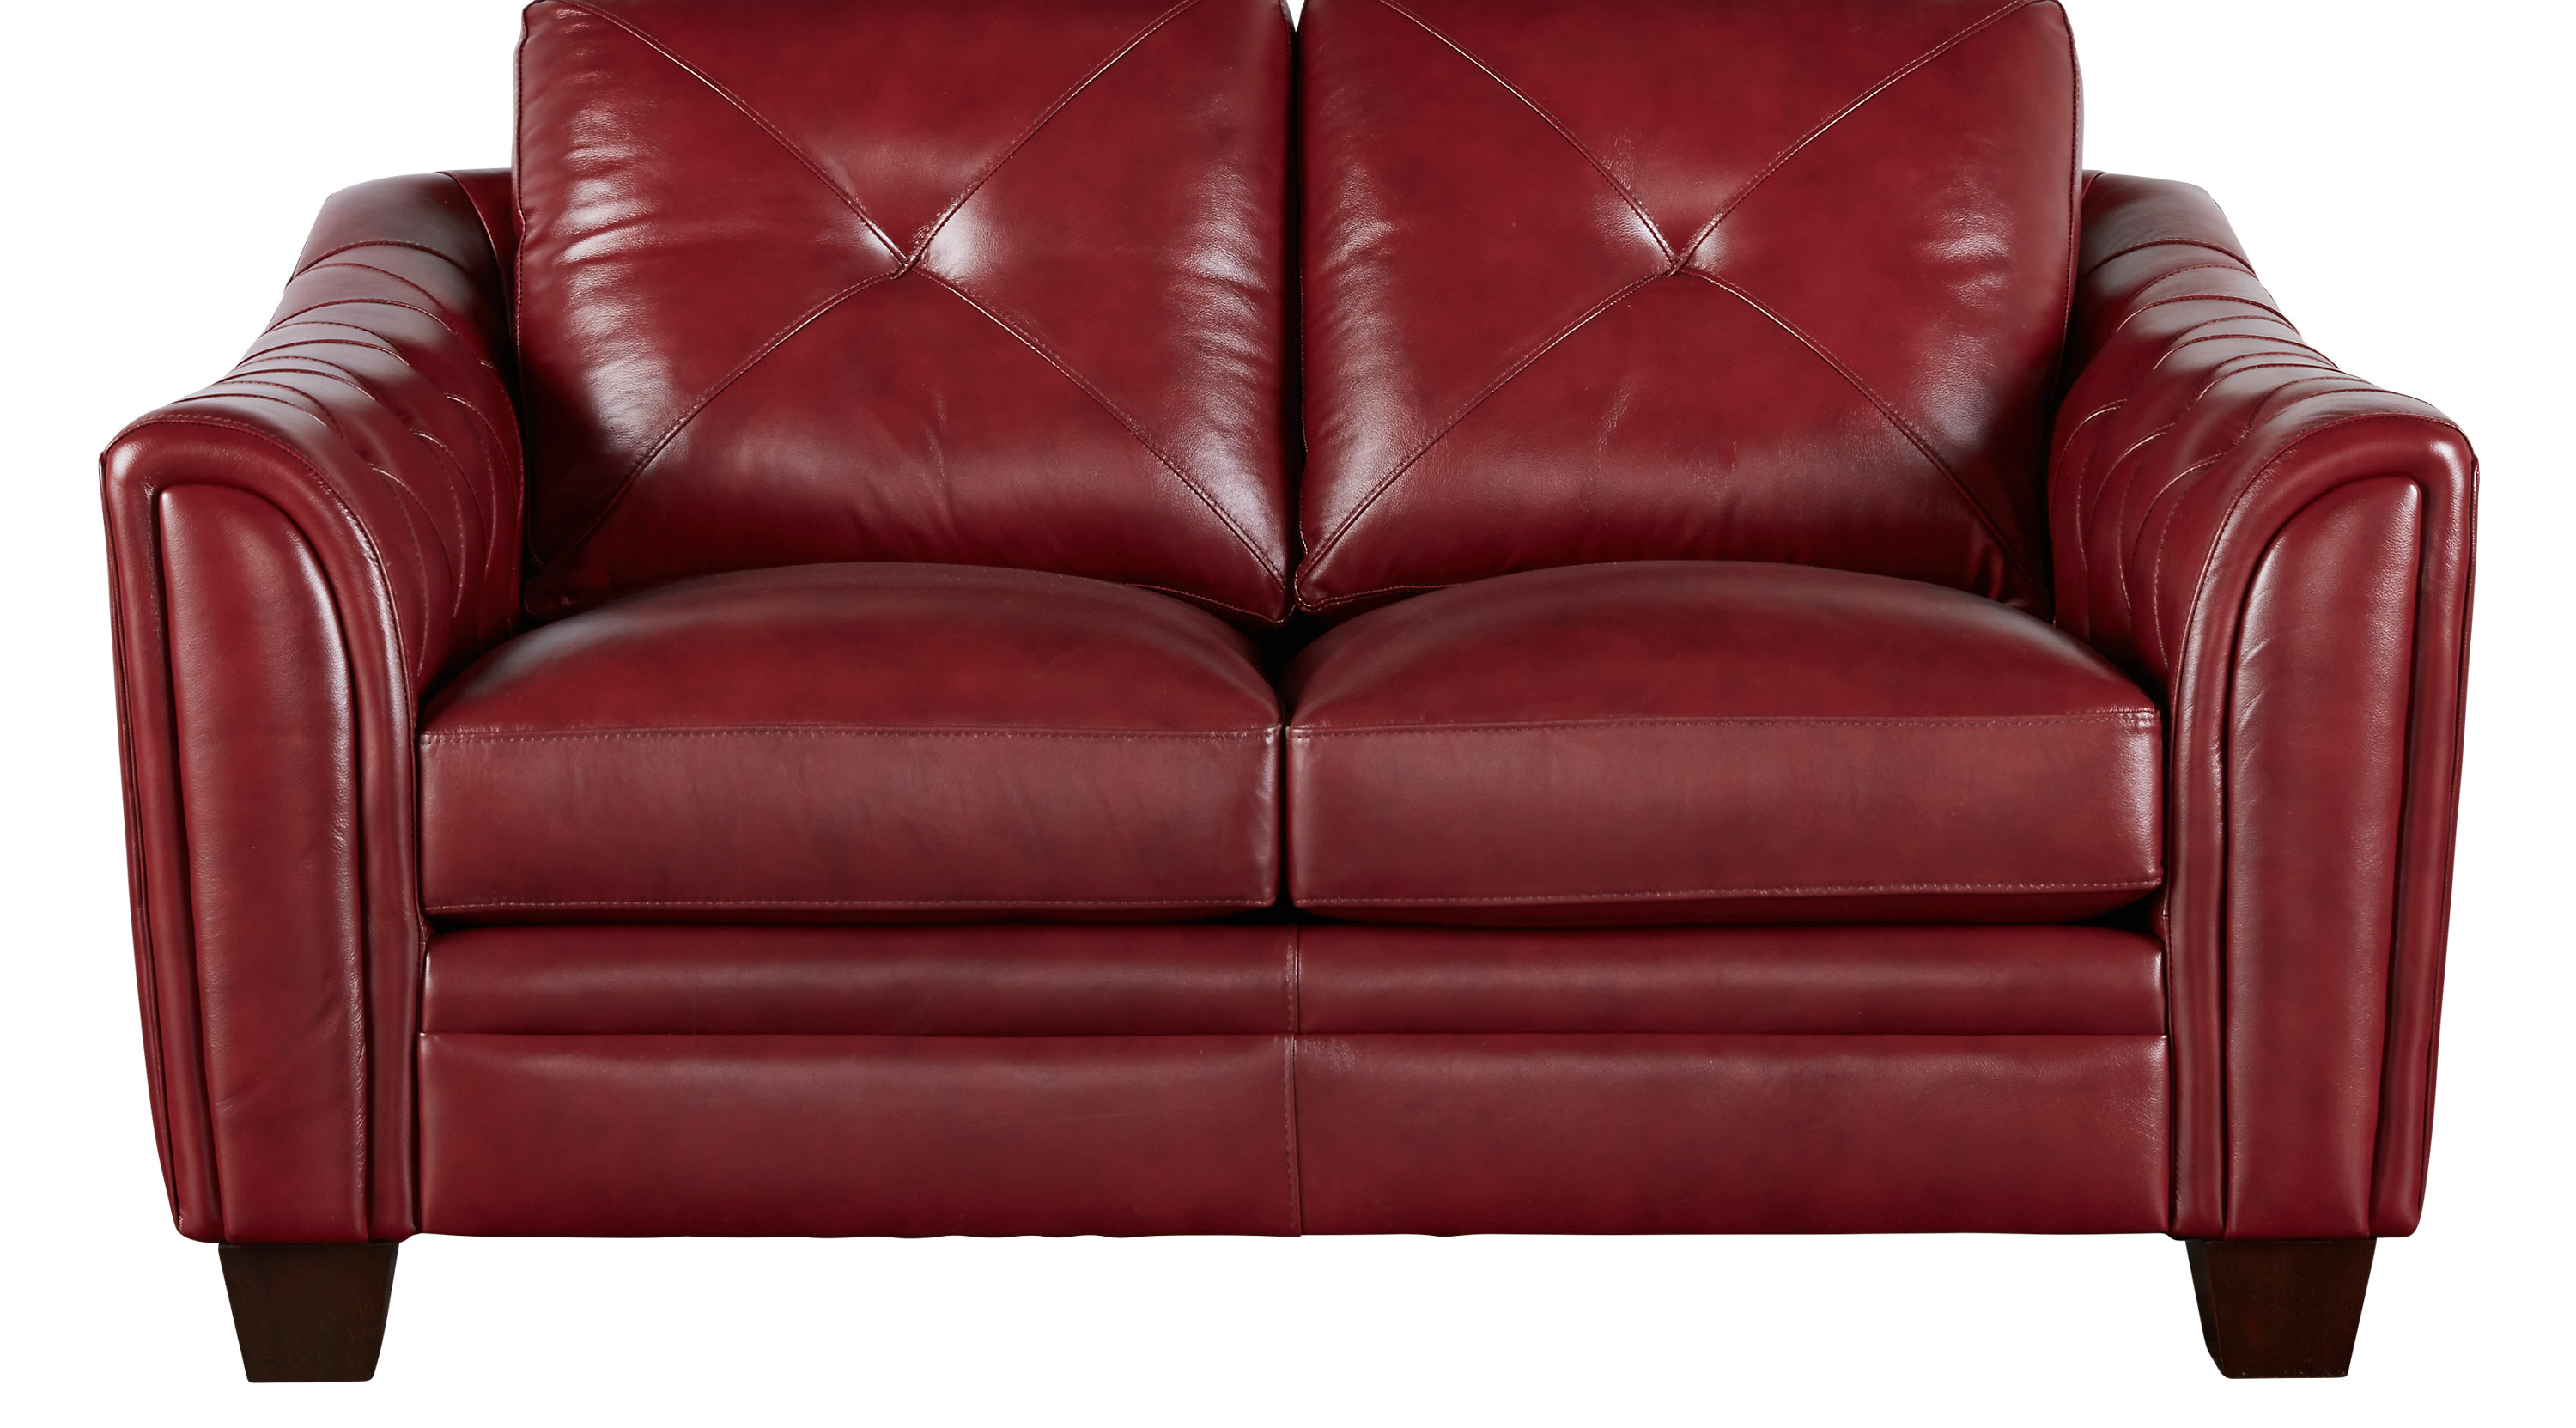 $868.00 - Marcella Red Leather Loveseat - Classic - Contemporary,